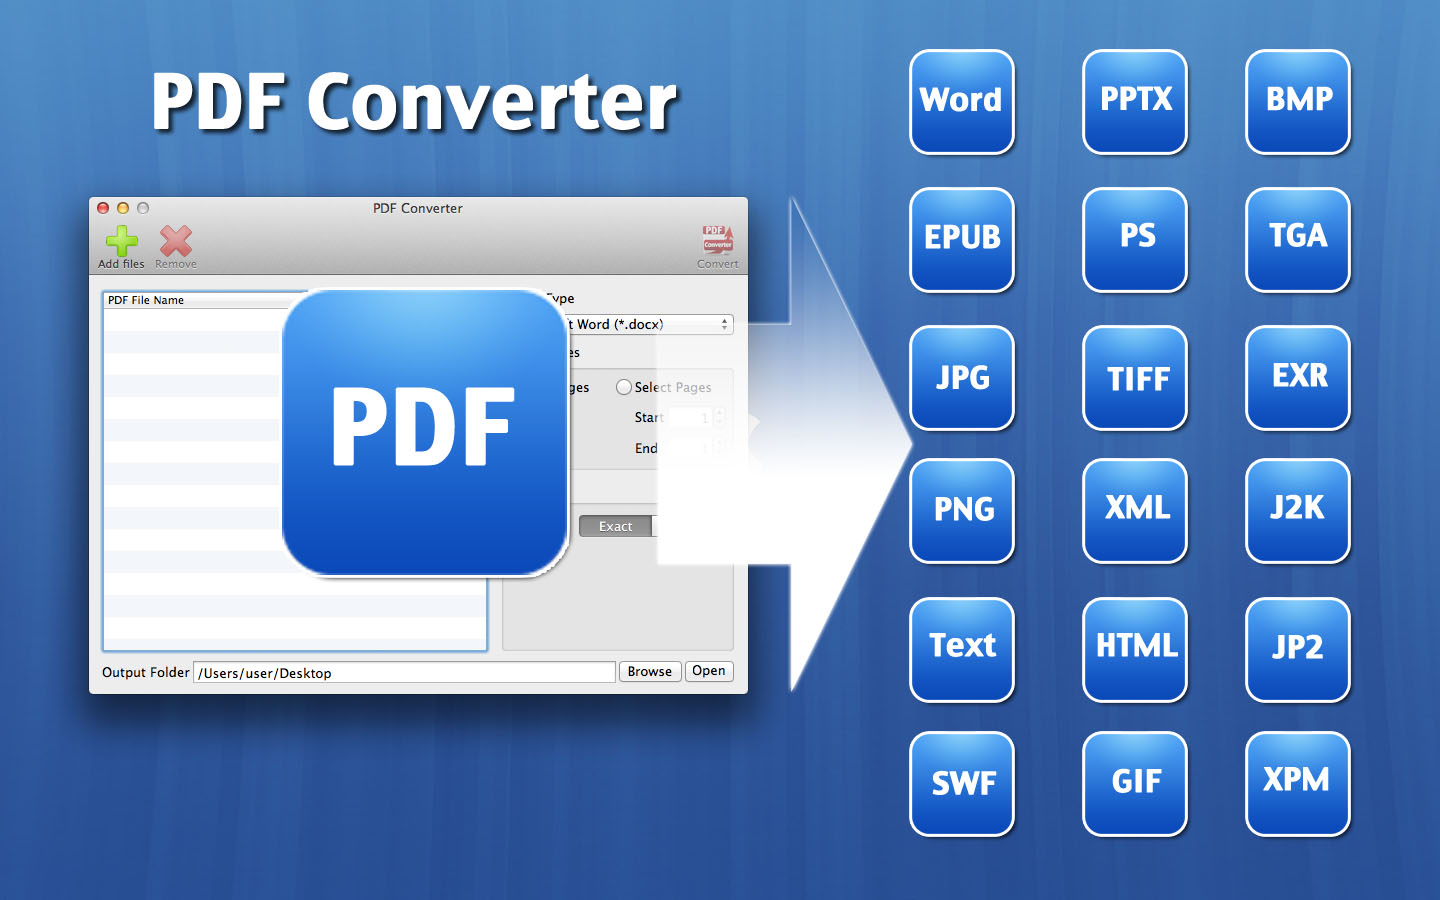 Convert a file to another format